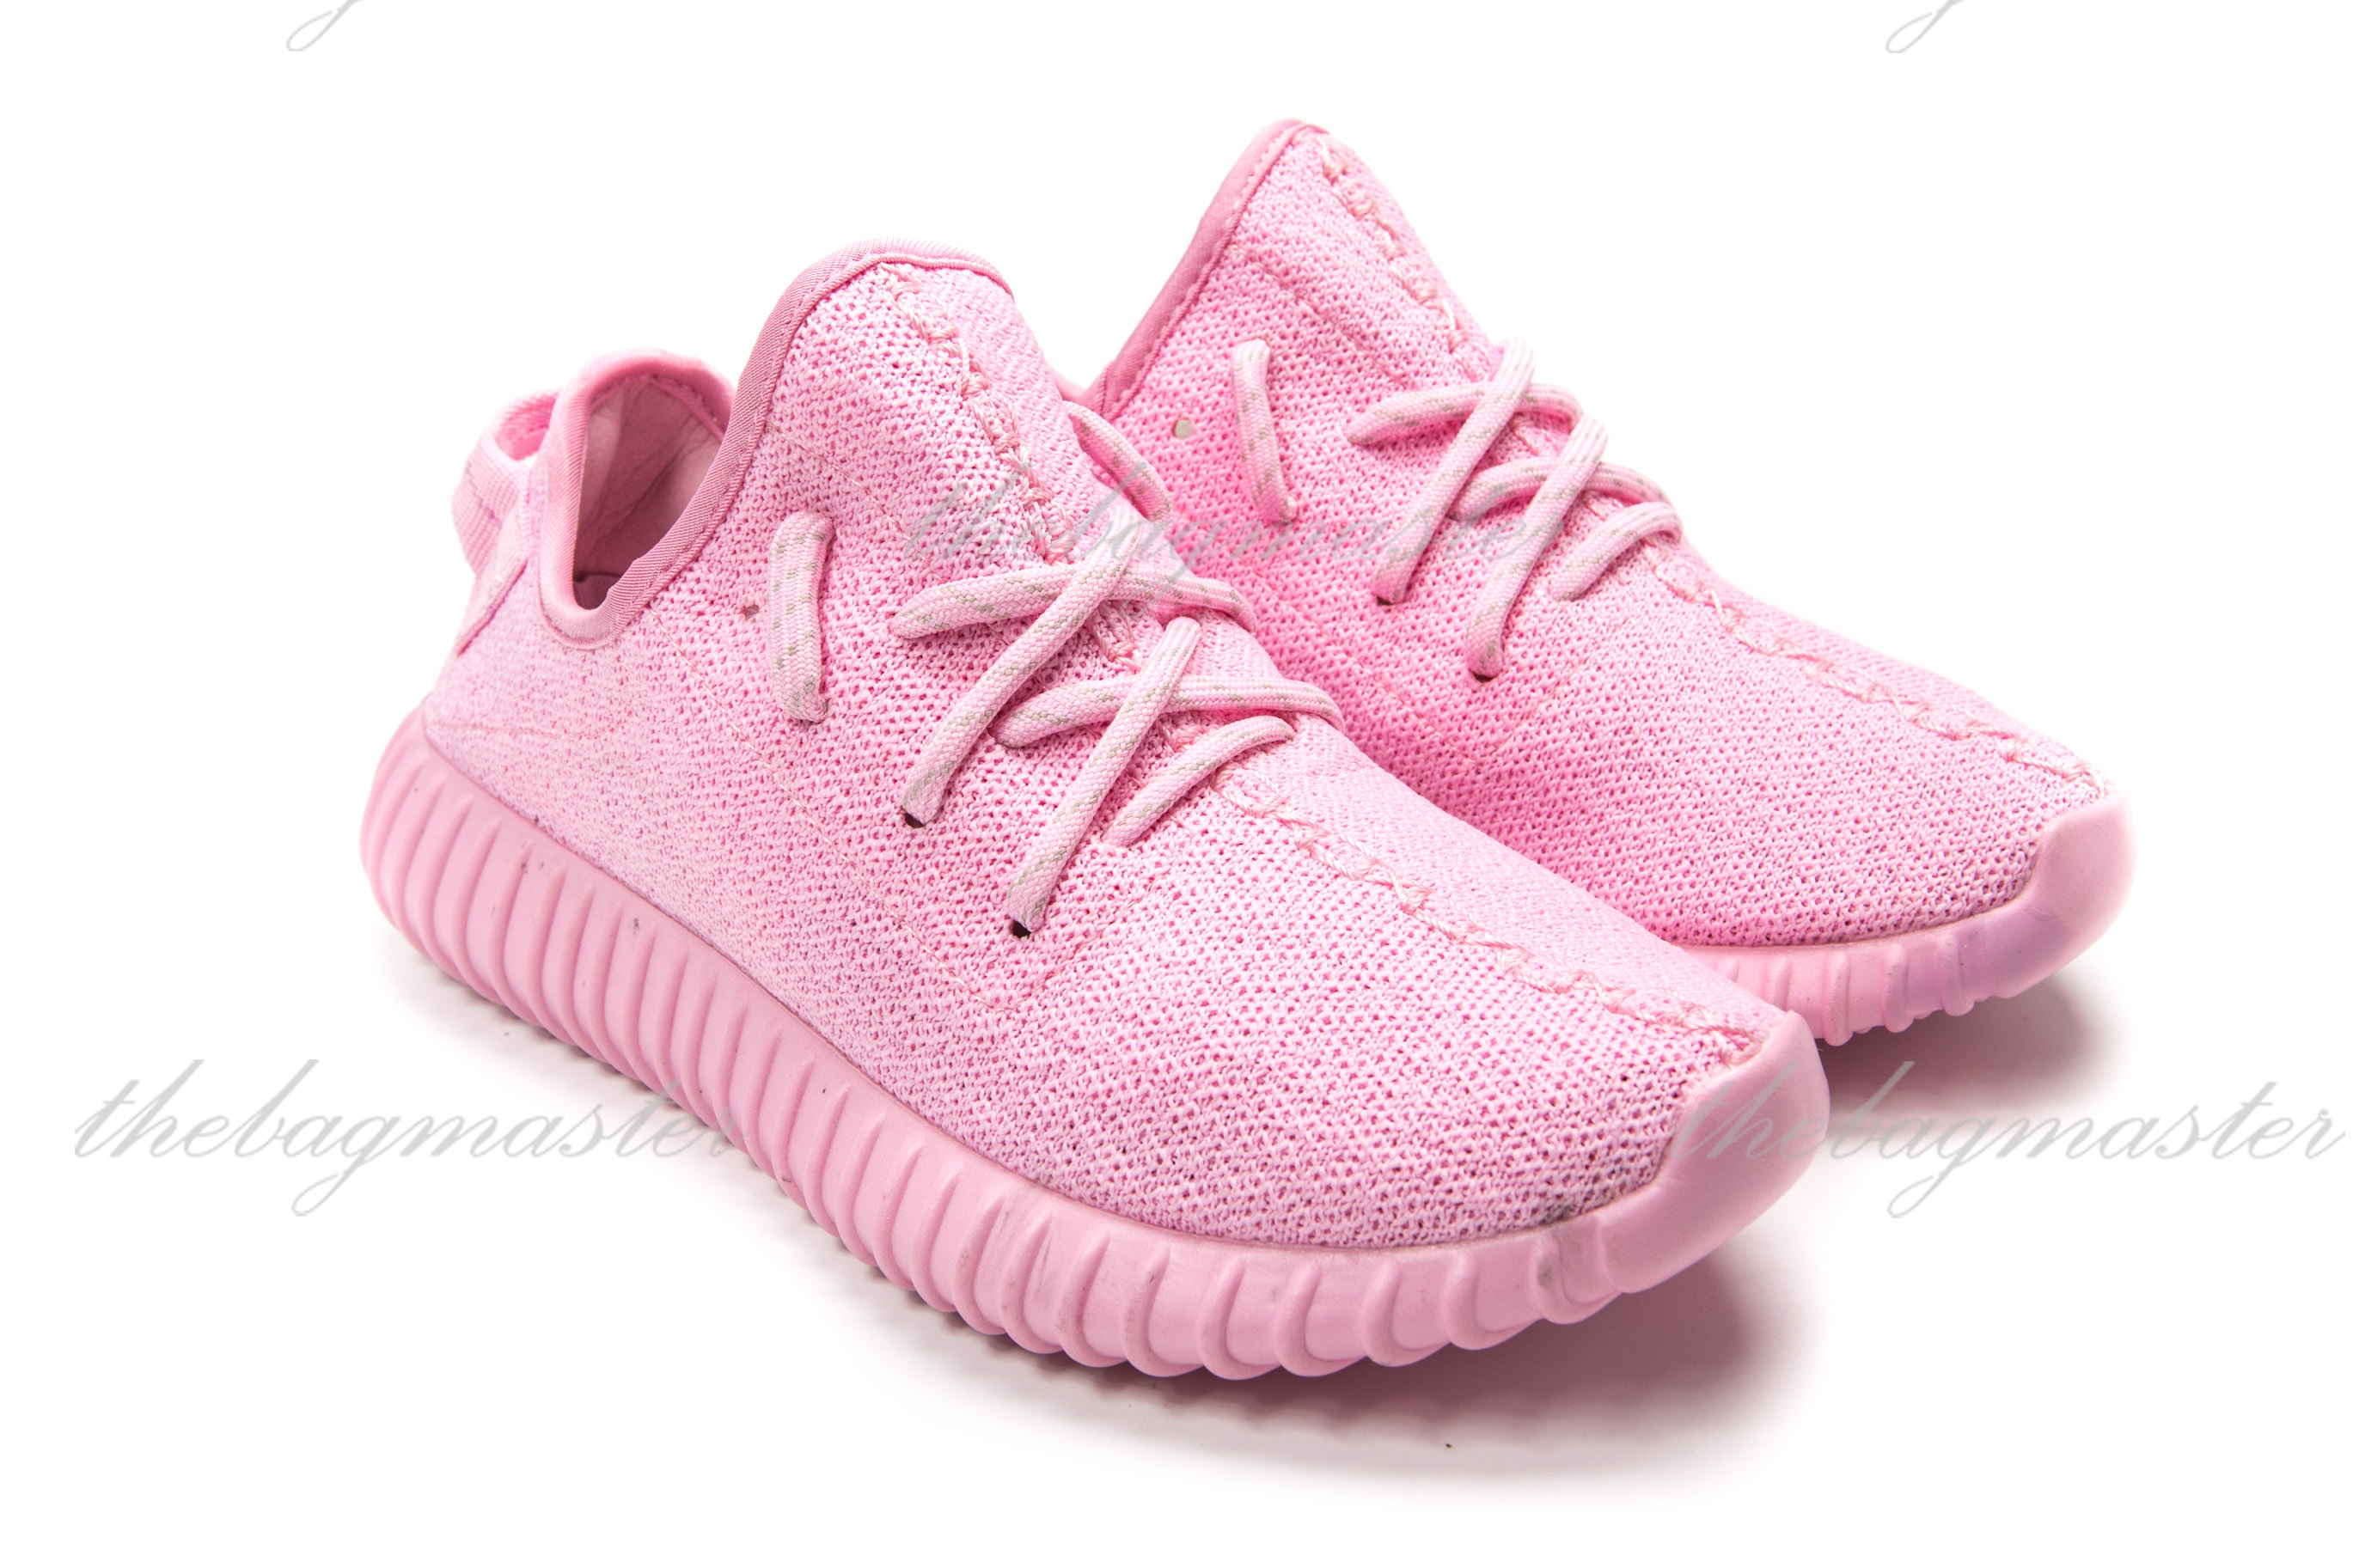 """new product 210b1 69743 Adidas Yeezy 350 Boost """"Rose Gold"""" Concept Pink"""